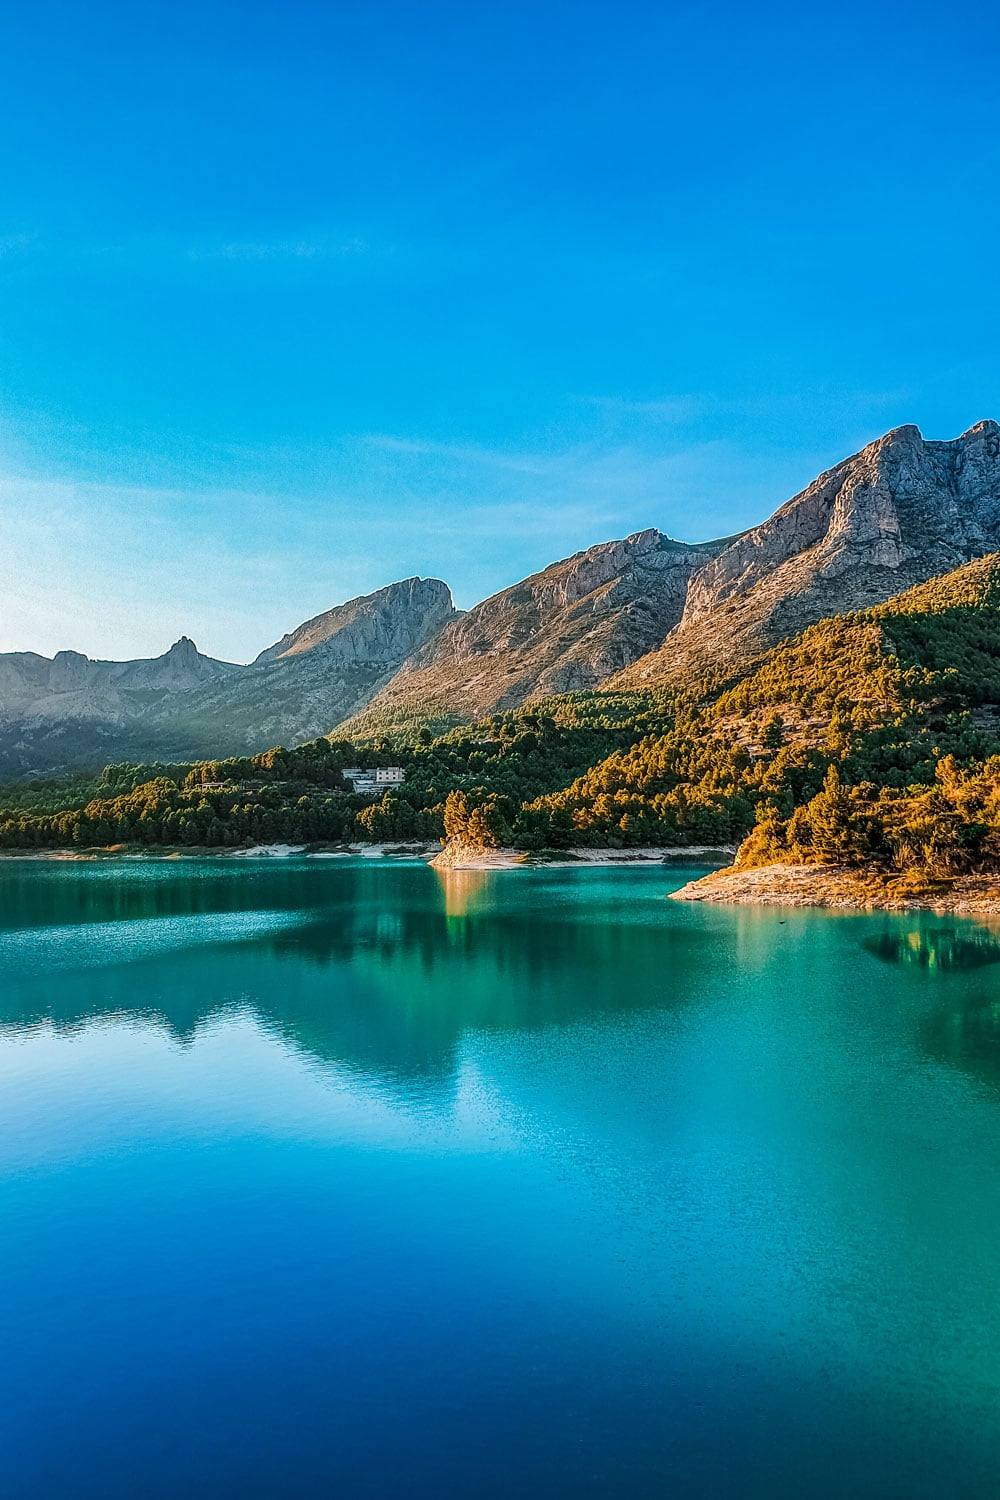 Guadalest Reservoir and mountains perfect place for walking